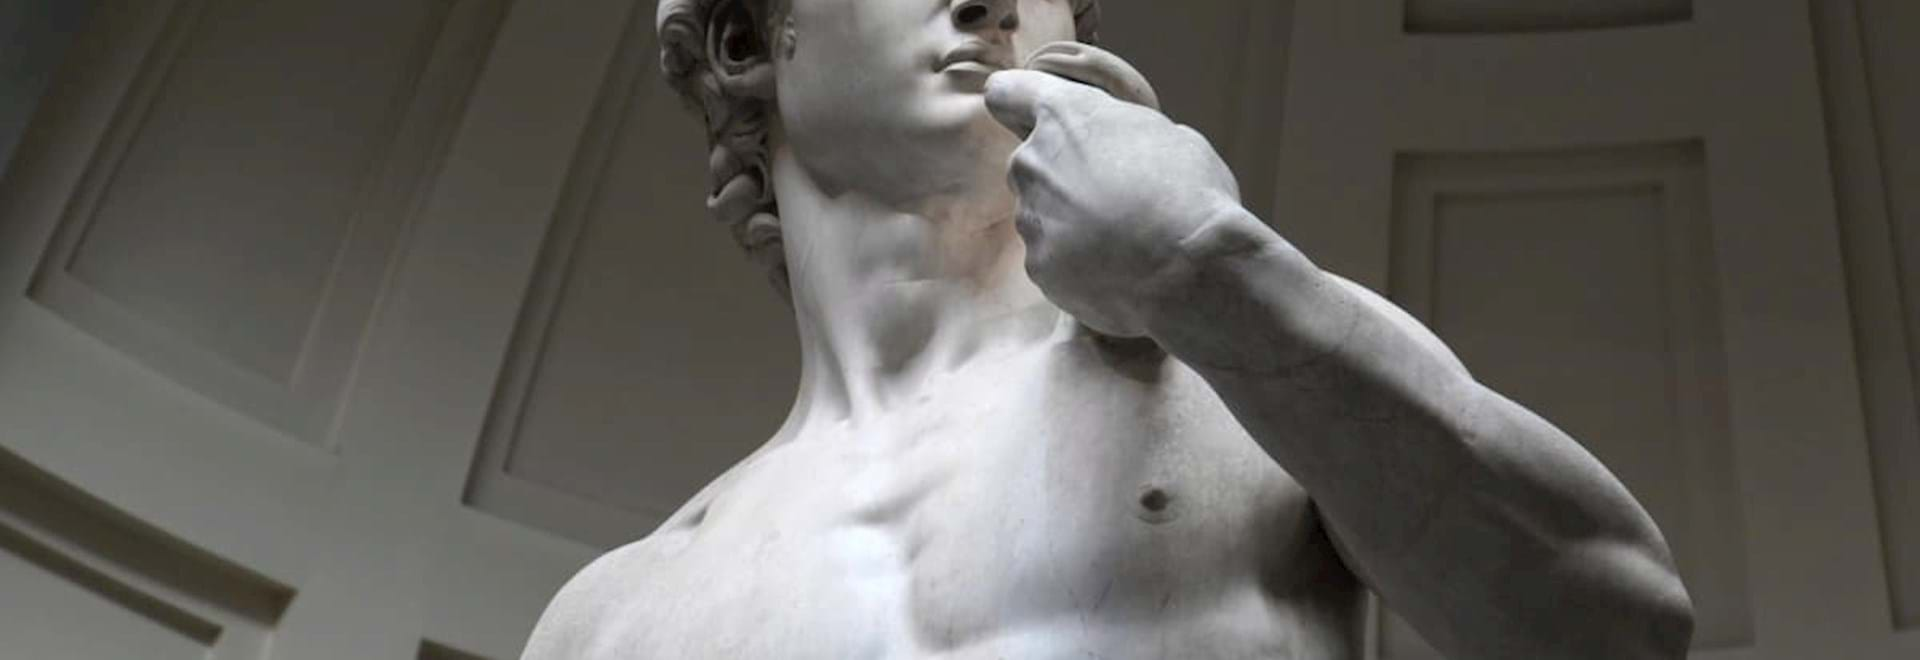 David Statue created by Michelangelo in Florence